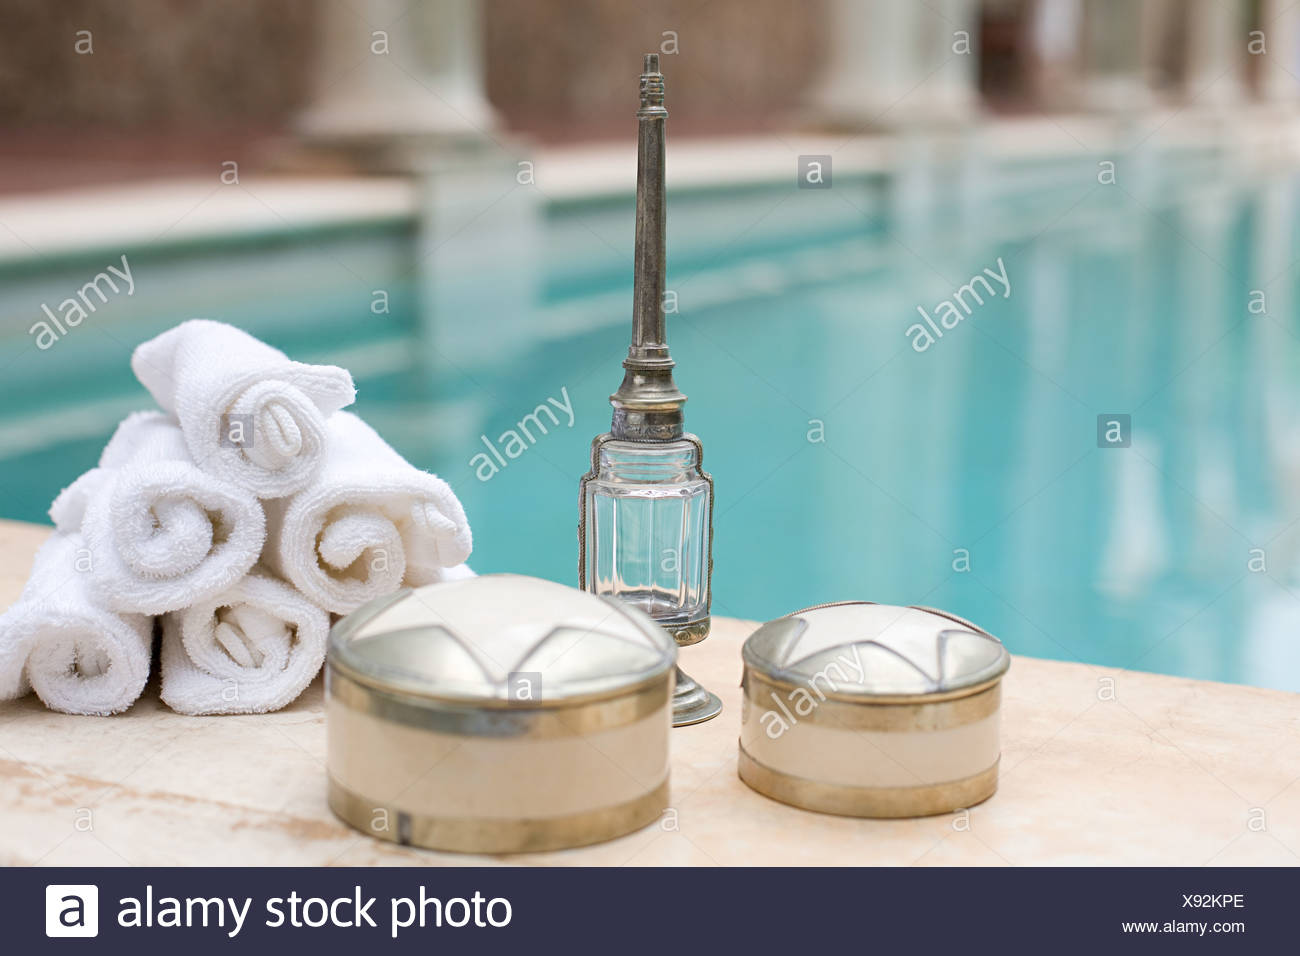 Objects by swimming pool - Stock Image